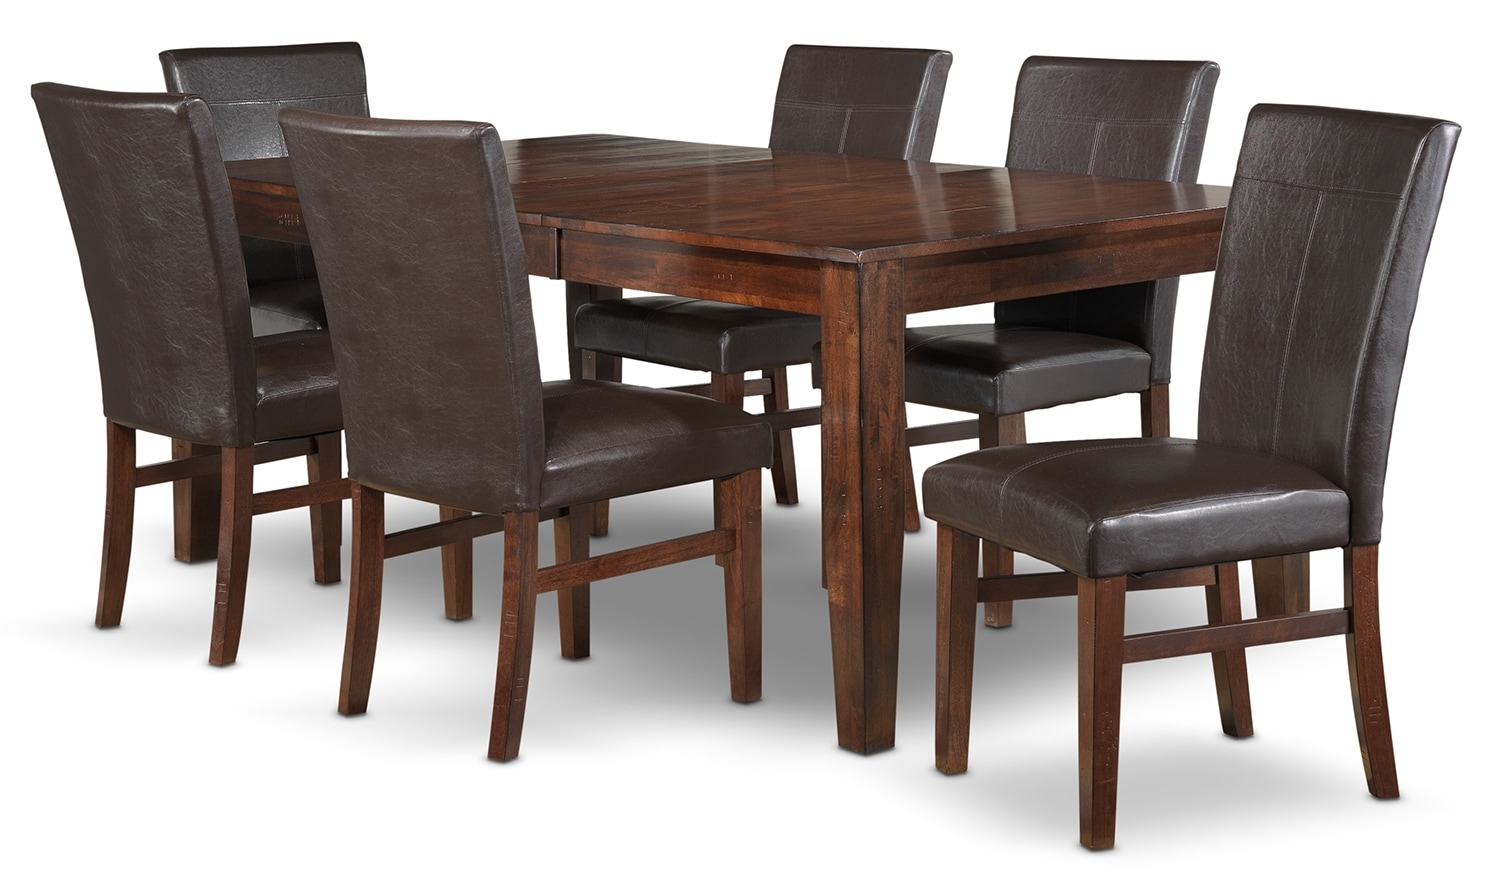 Dining Room Furniture - Kona 7-Piece Dining Room Set - Dark Oak